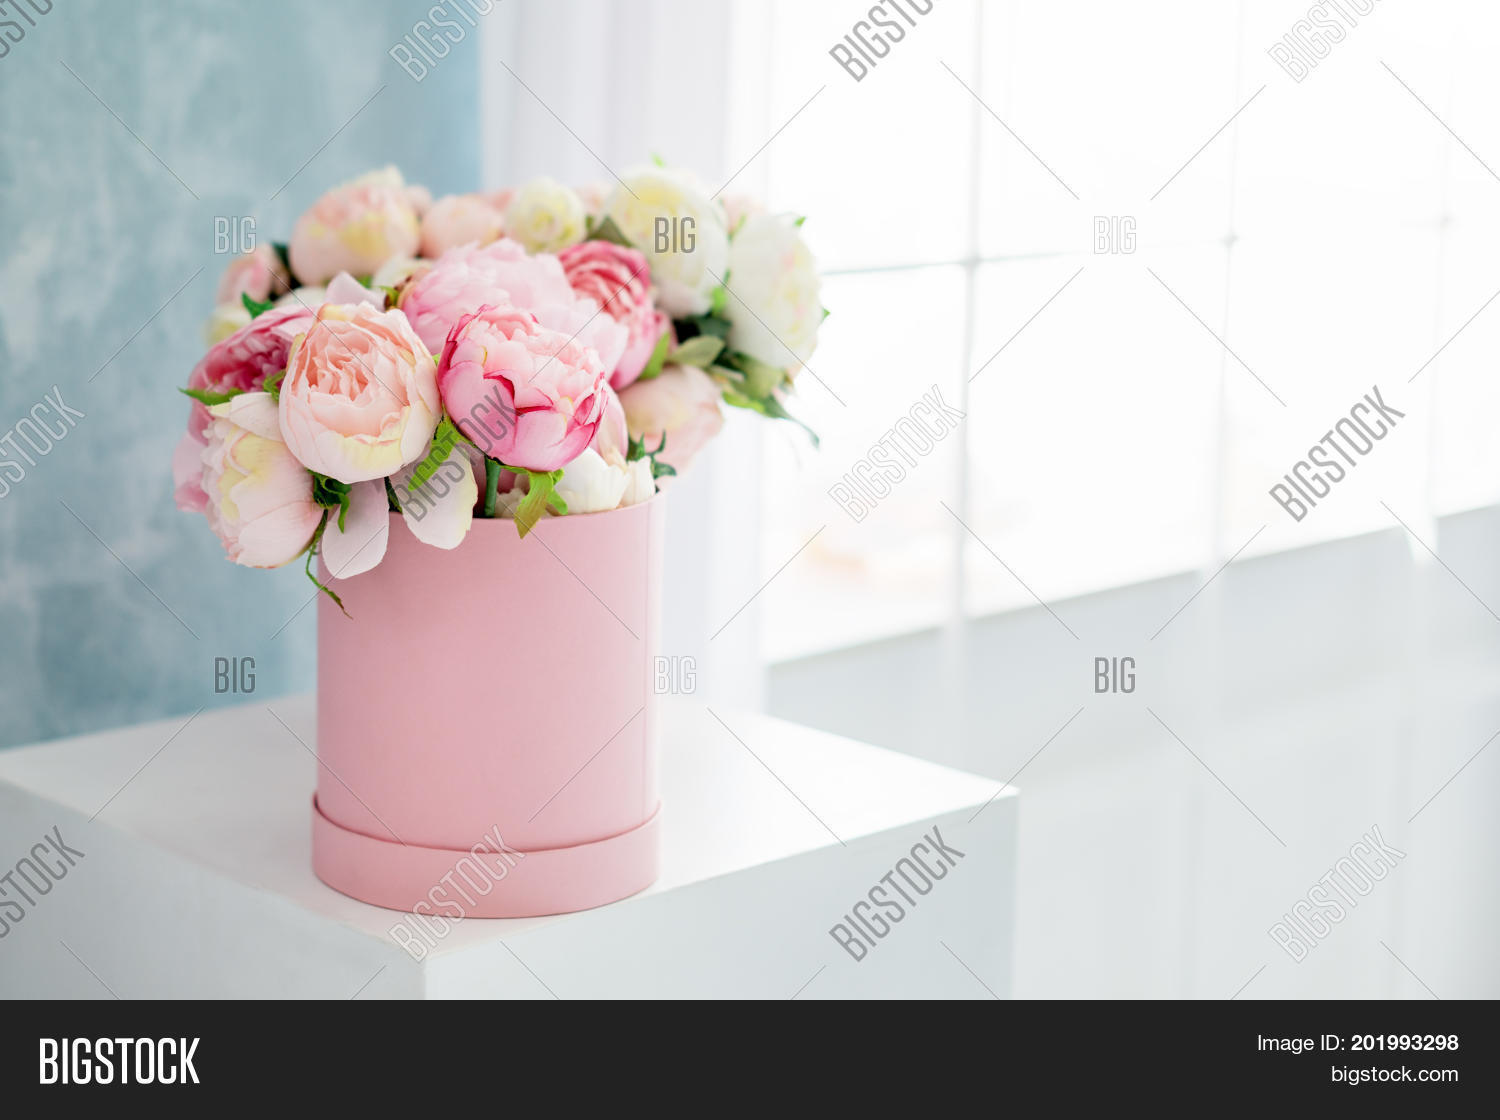 Flowers round luxury present box image photo bigstock flowers in round luxury present box bouquet of pink and white peonies in paper box izmirmasajfo